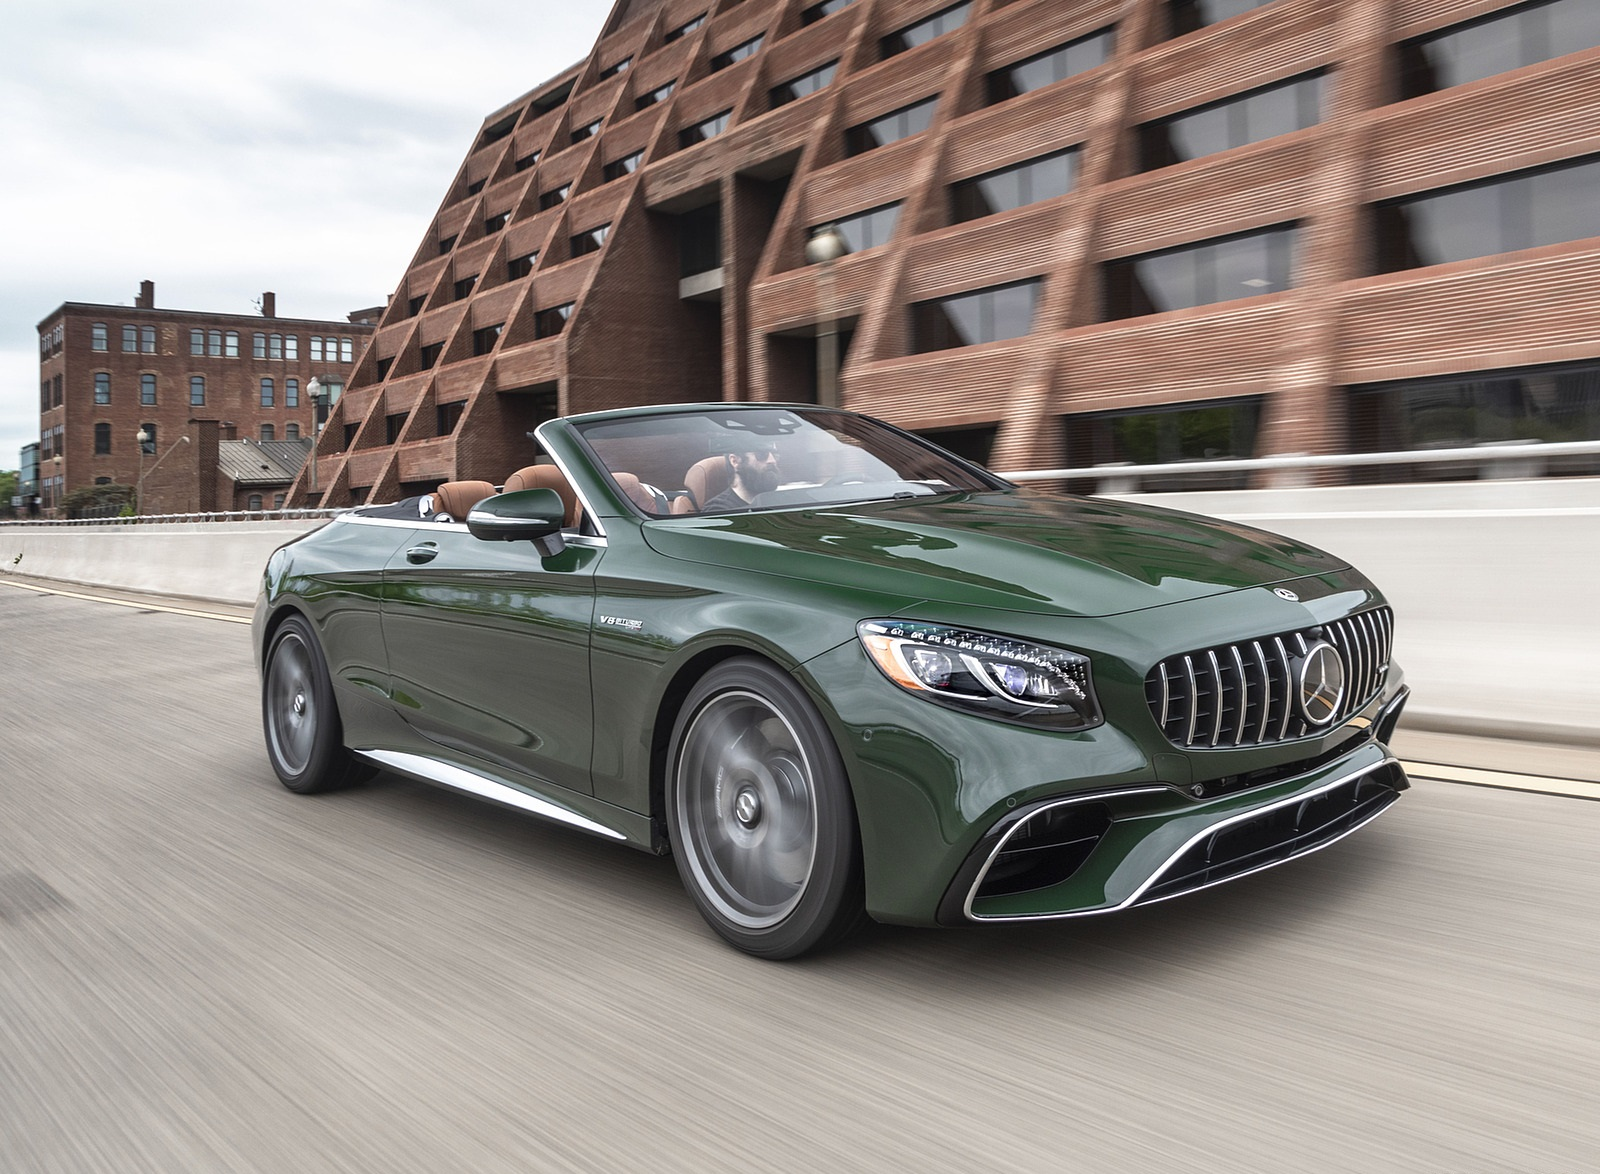 2020 Mercedes-AMG S 63 Cabriolet (US-Spec) Front Three-Quarter Wallpapers (5)